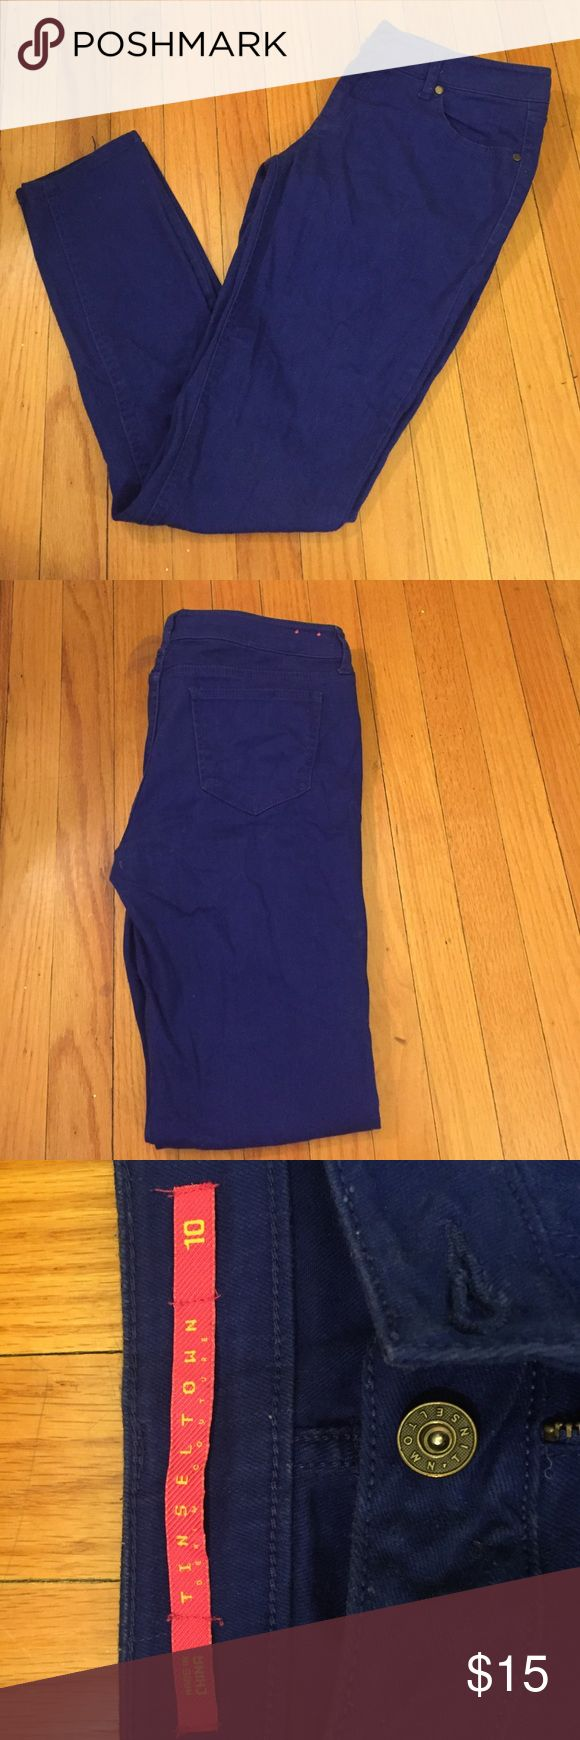 Tinseltown blue jeans Tinseltown BLUE stretch jeans - love these and price is always negotiable Tinseltown Jeans Skinny